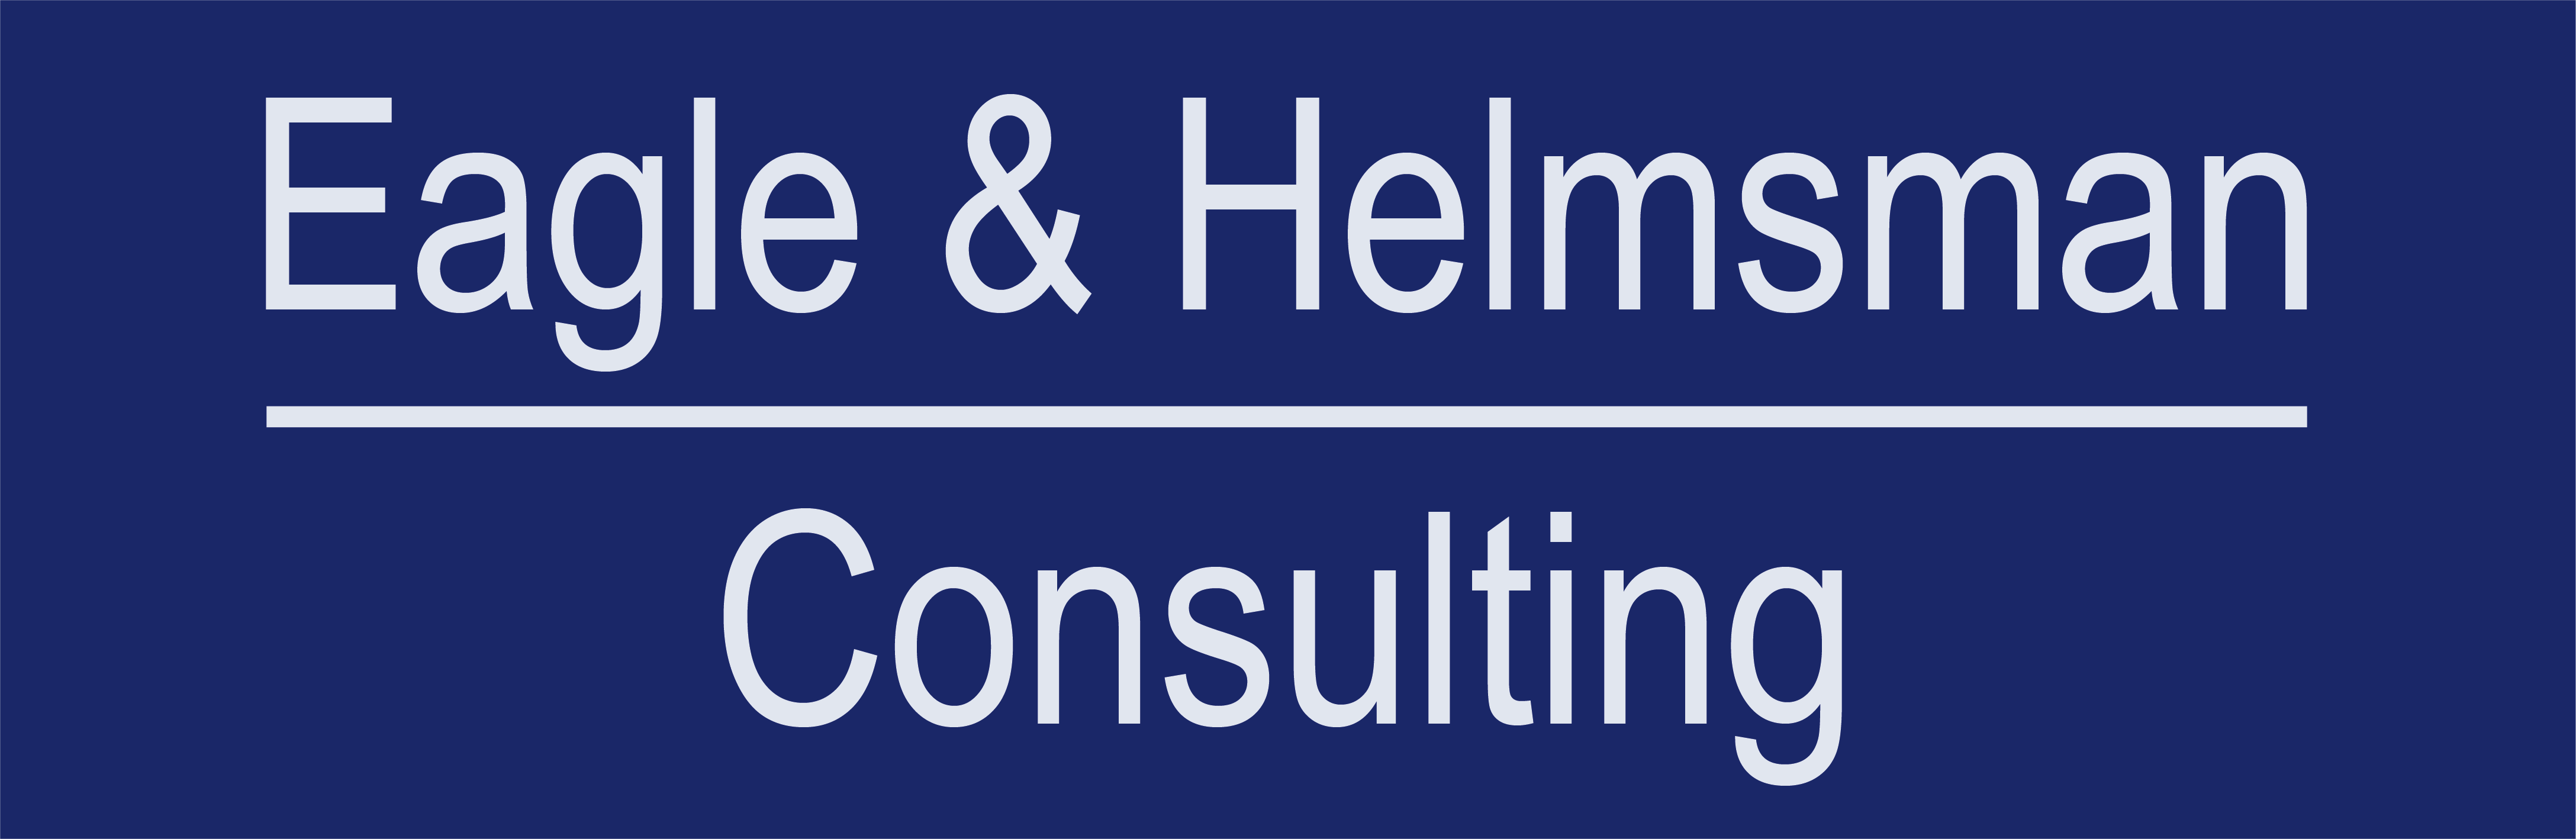 Eagle & Helmsman Consulting GmbH